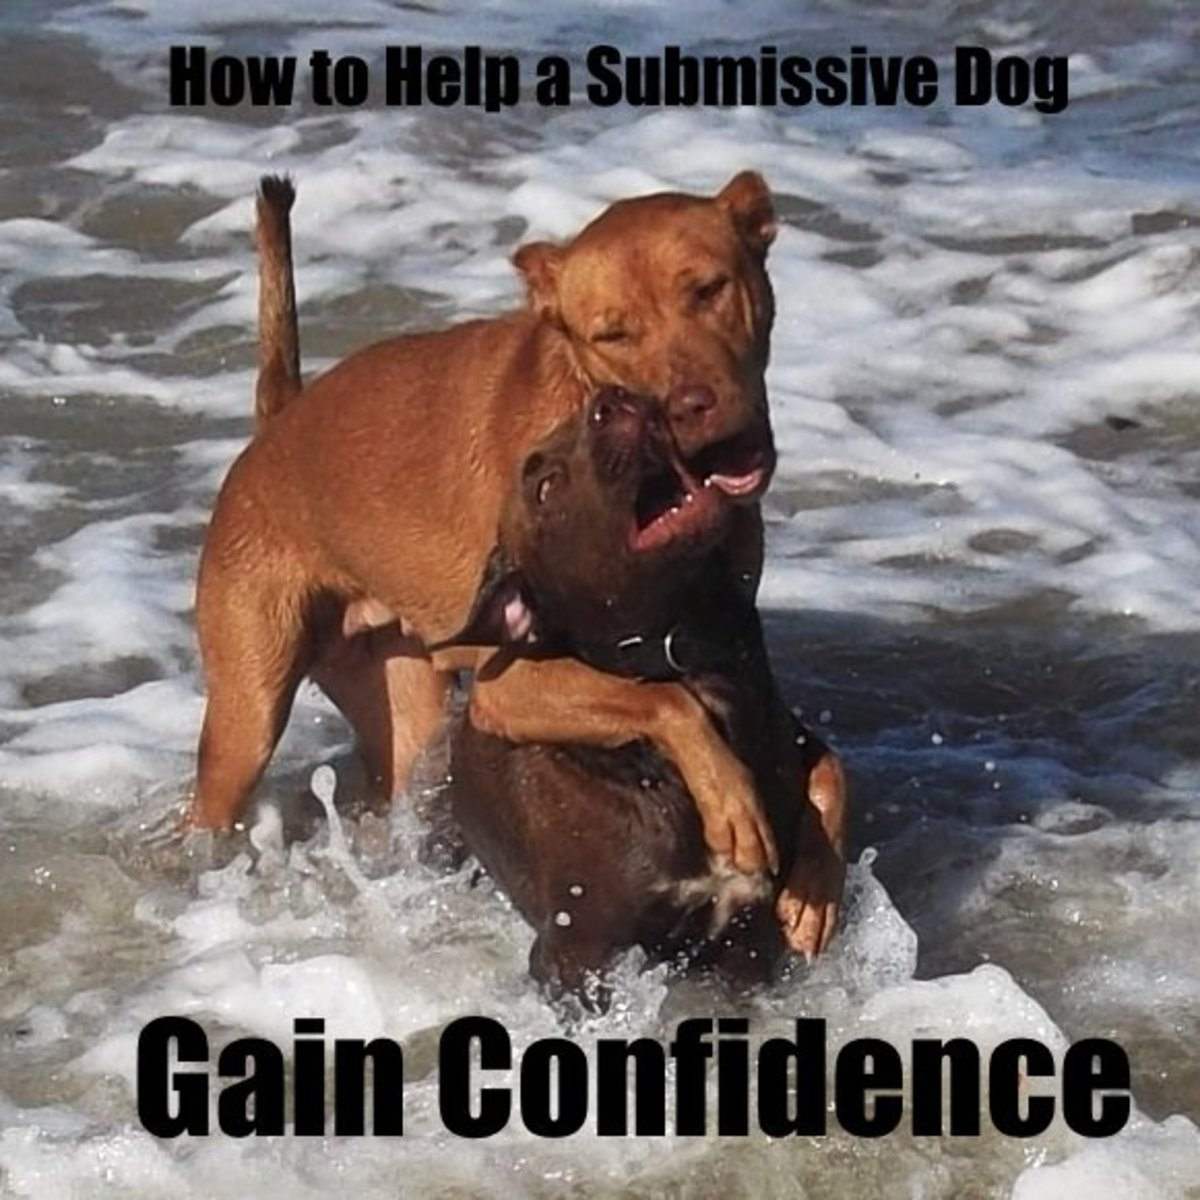 How to Help a Submissive Dog Build Confidence